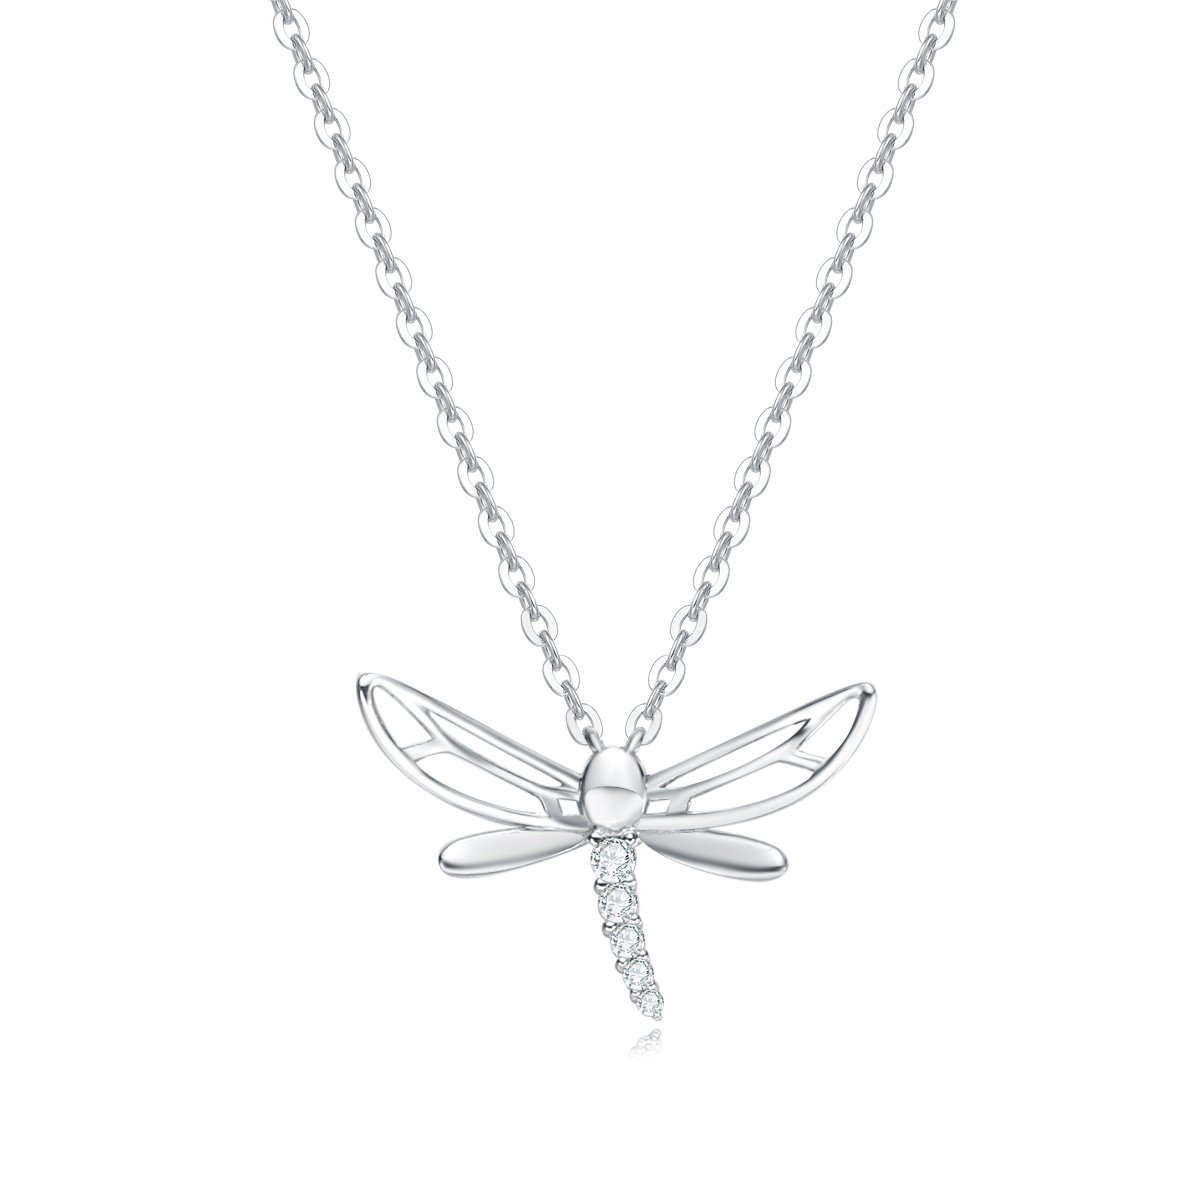 cae0fbdfc Amazon.com: Carleen 14k Solid White Gold CZ Cubic Zirconia Dragonfly  Necklace Dainty Delicate Fine Jewelry Statement Pendant for Women Girls, ...